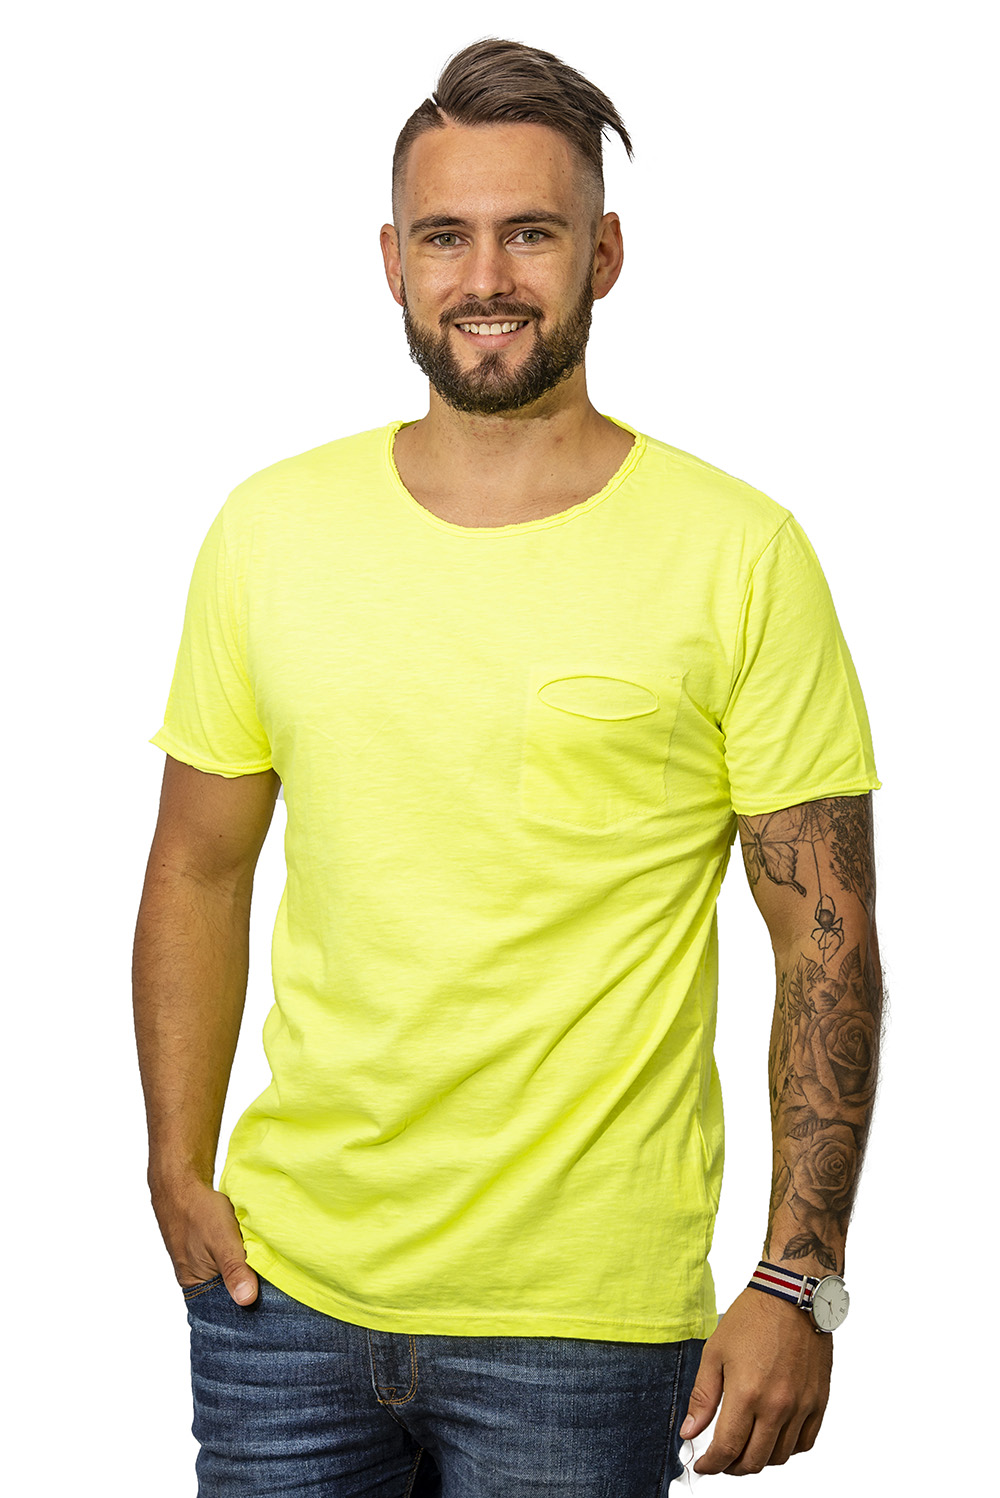 Mens T-shirt with pocket yellow front